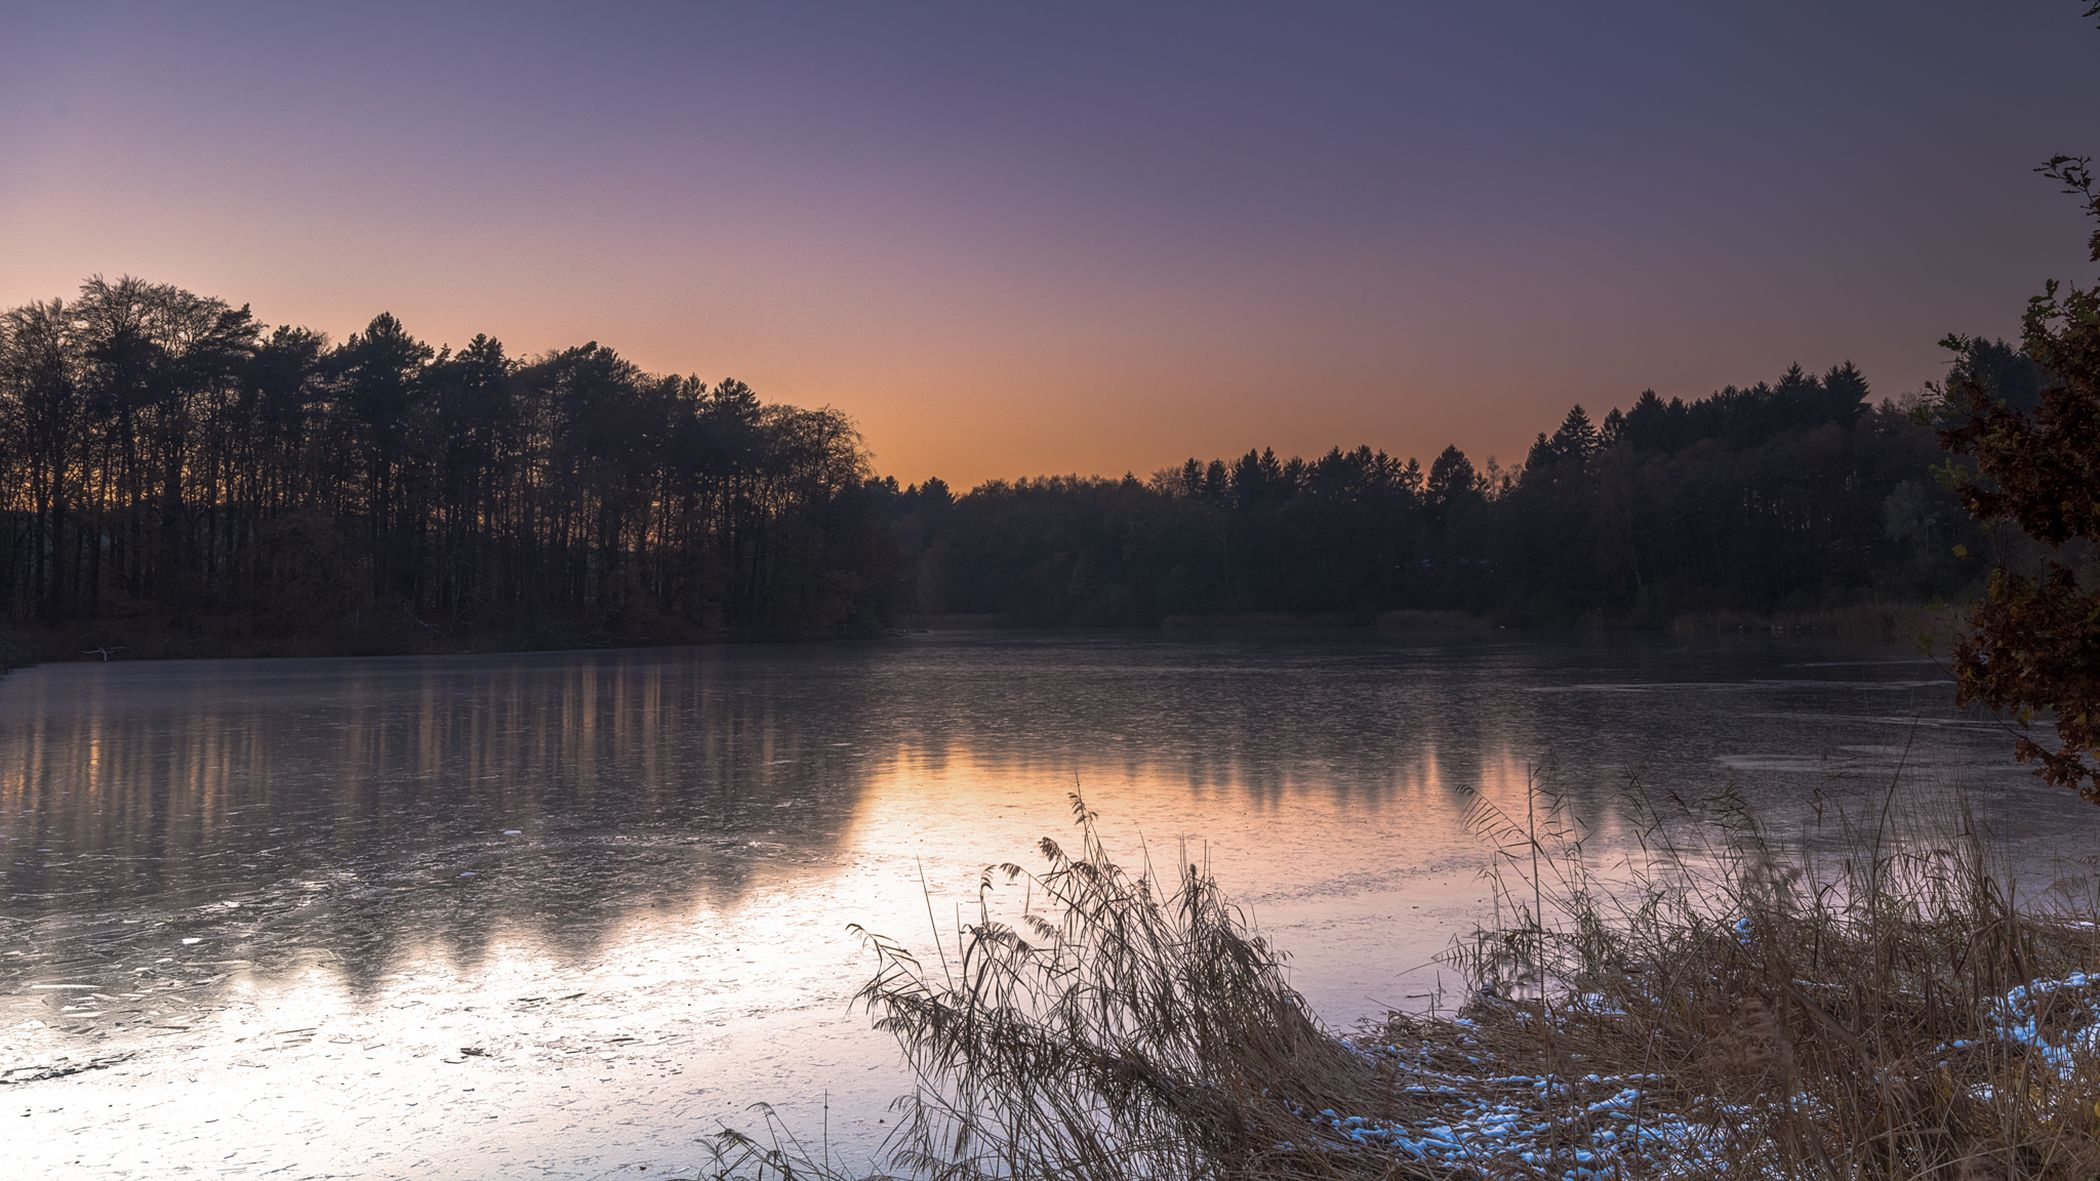 Sunset at the Mönchteich in Trittau SH Germany Sunset Landscape Tree Water Silhouette Lake Nature No People Sky Outdoors Germany Sea Winter Natural Parkland Pentax Sigma Trittau Schleswig-Holstein Sonnenuntergang HDR Backgrounds Arrival First Eyeem Photo